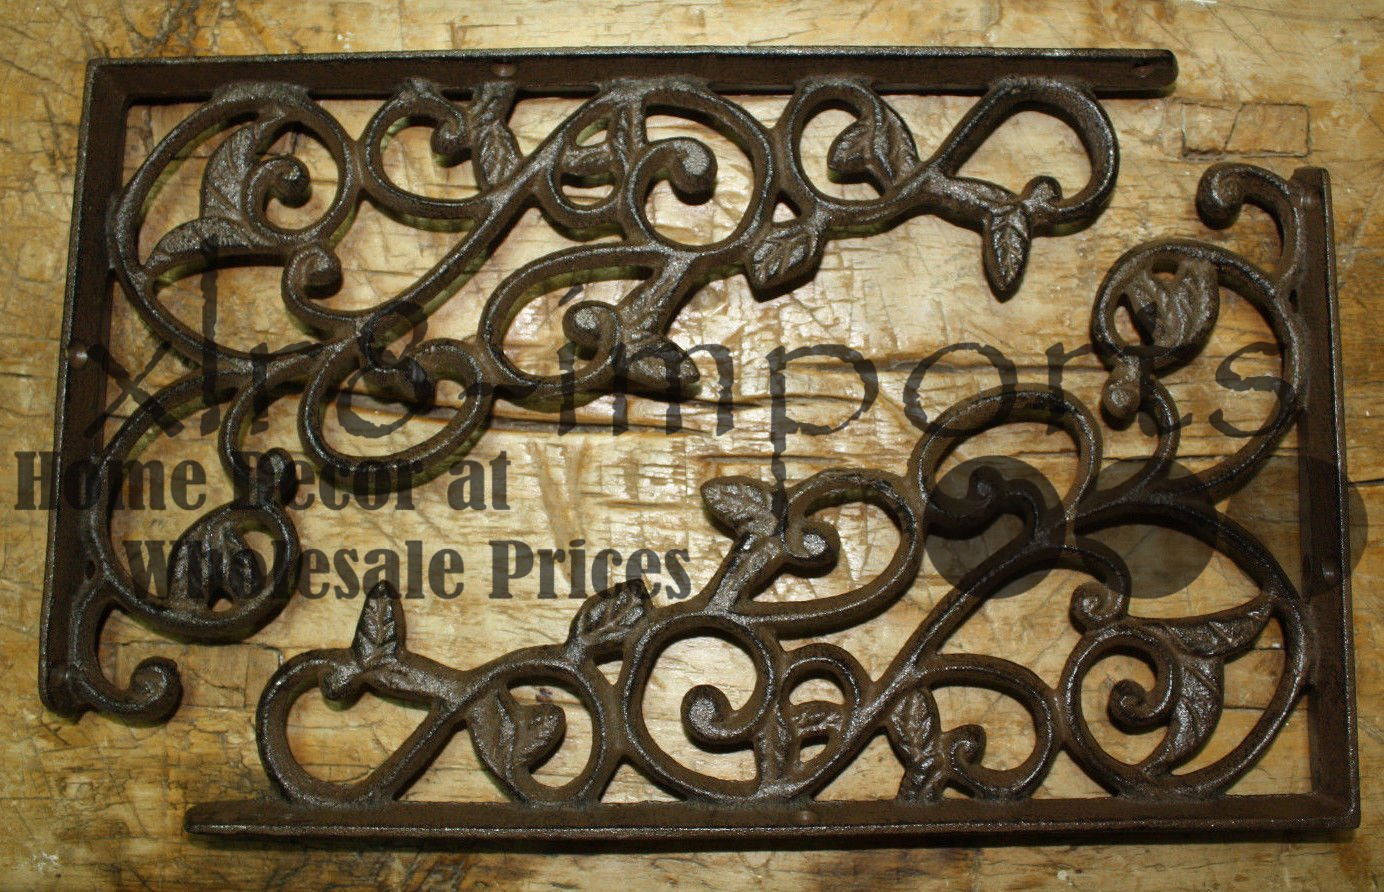 8 Cast Iron Antique Style LEAVES & VINE Brackets, Garden Braces Shelf Bracket , Garden Braces Shelf Bracket , Garden Braces Shelf Bracket RUSTIC , Wall Brackets Shelf Support for Storage